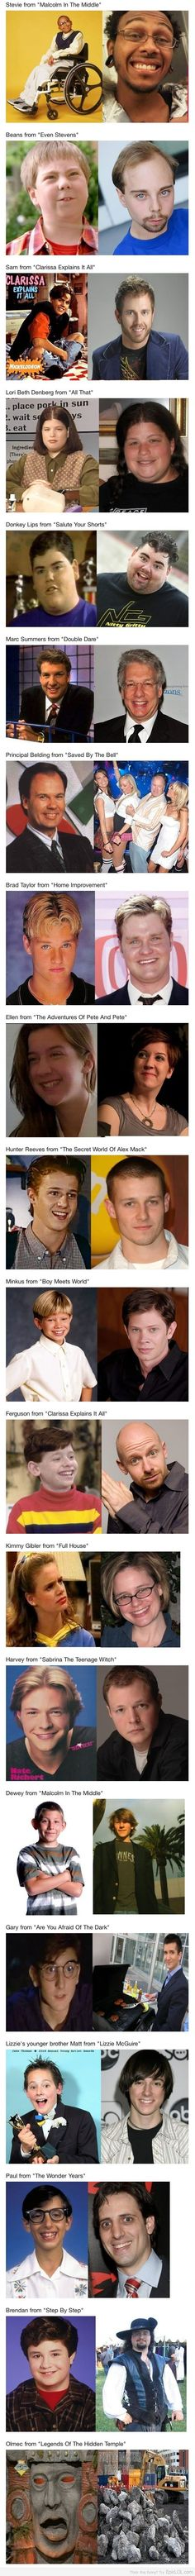 I feel old...Remember these faces from your childhood??